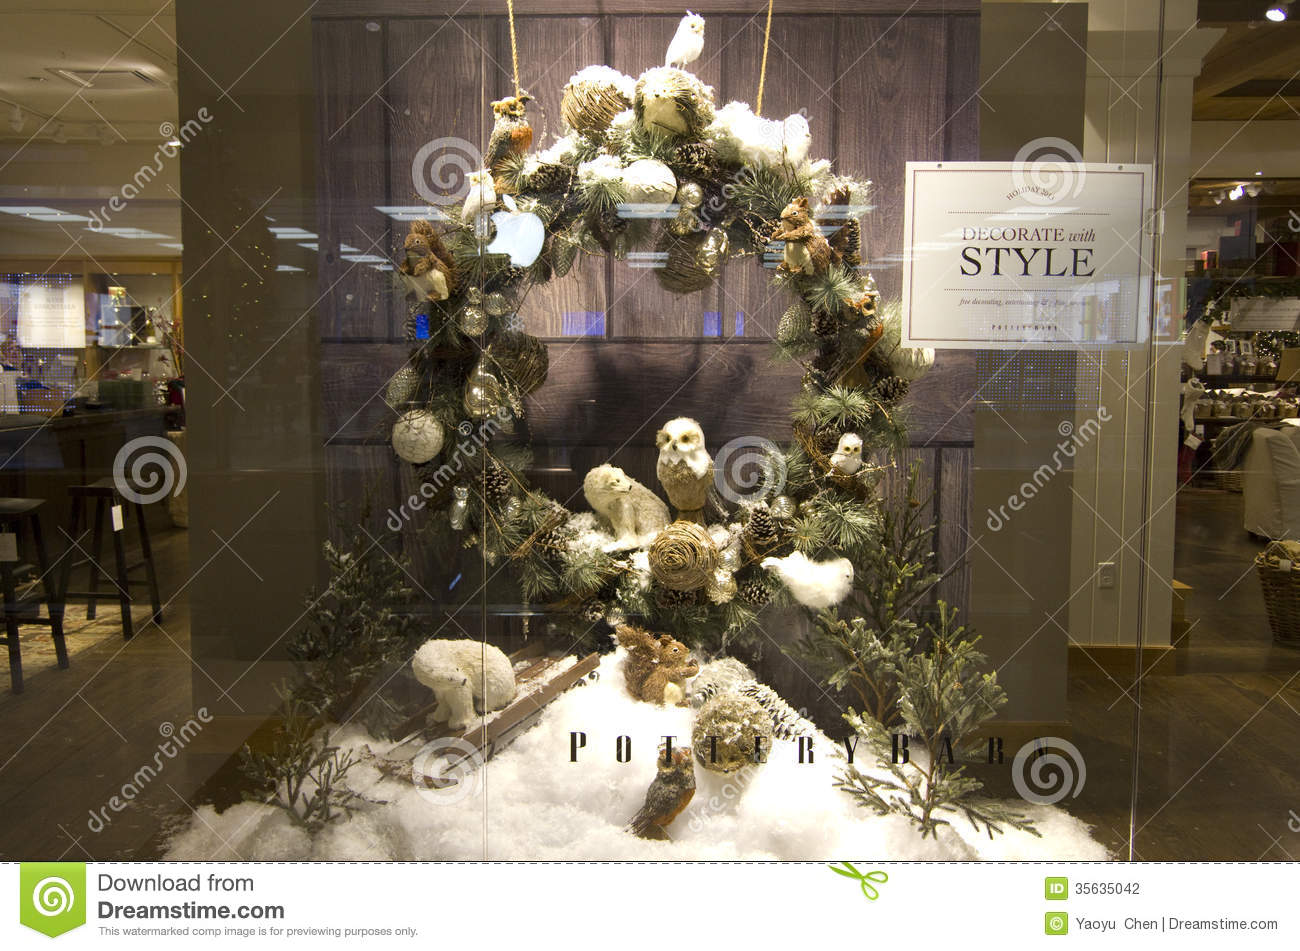 thanksgiving christmas decorations home deco store window - How To Decorate Windows For Christmas